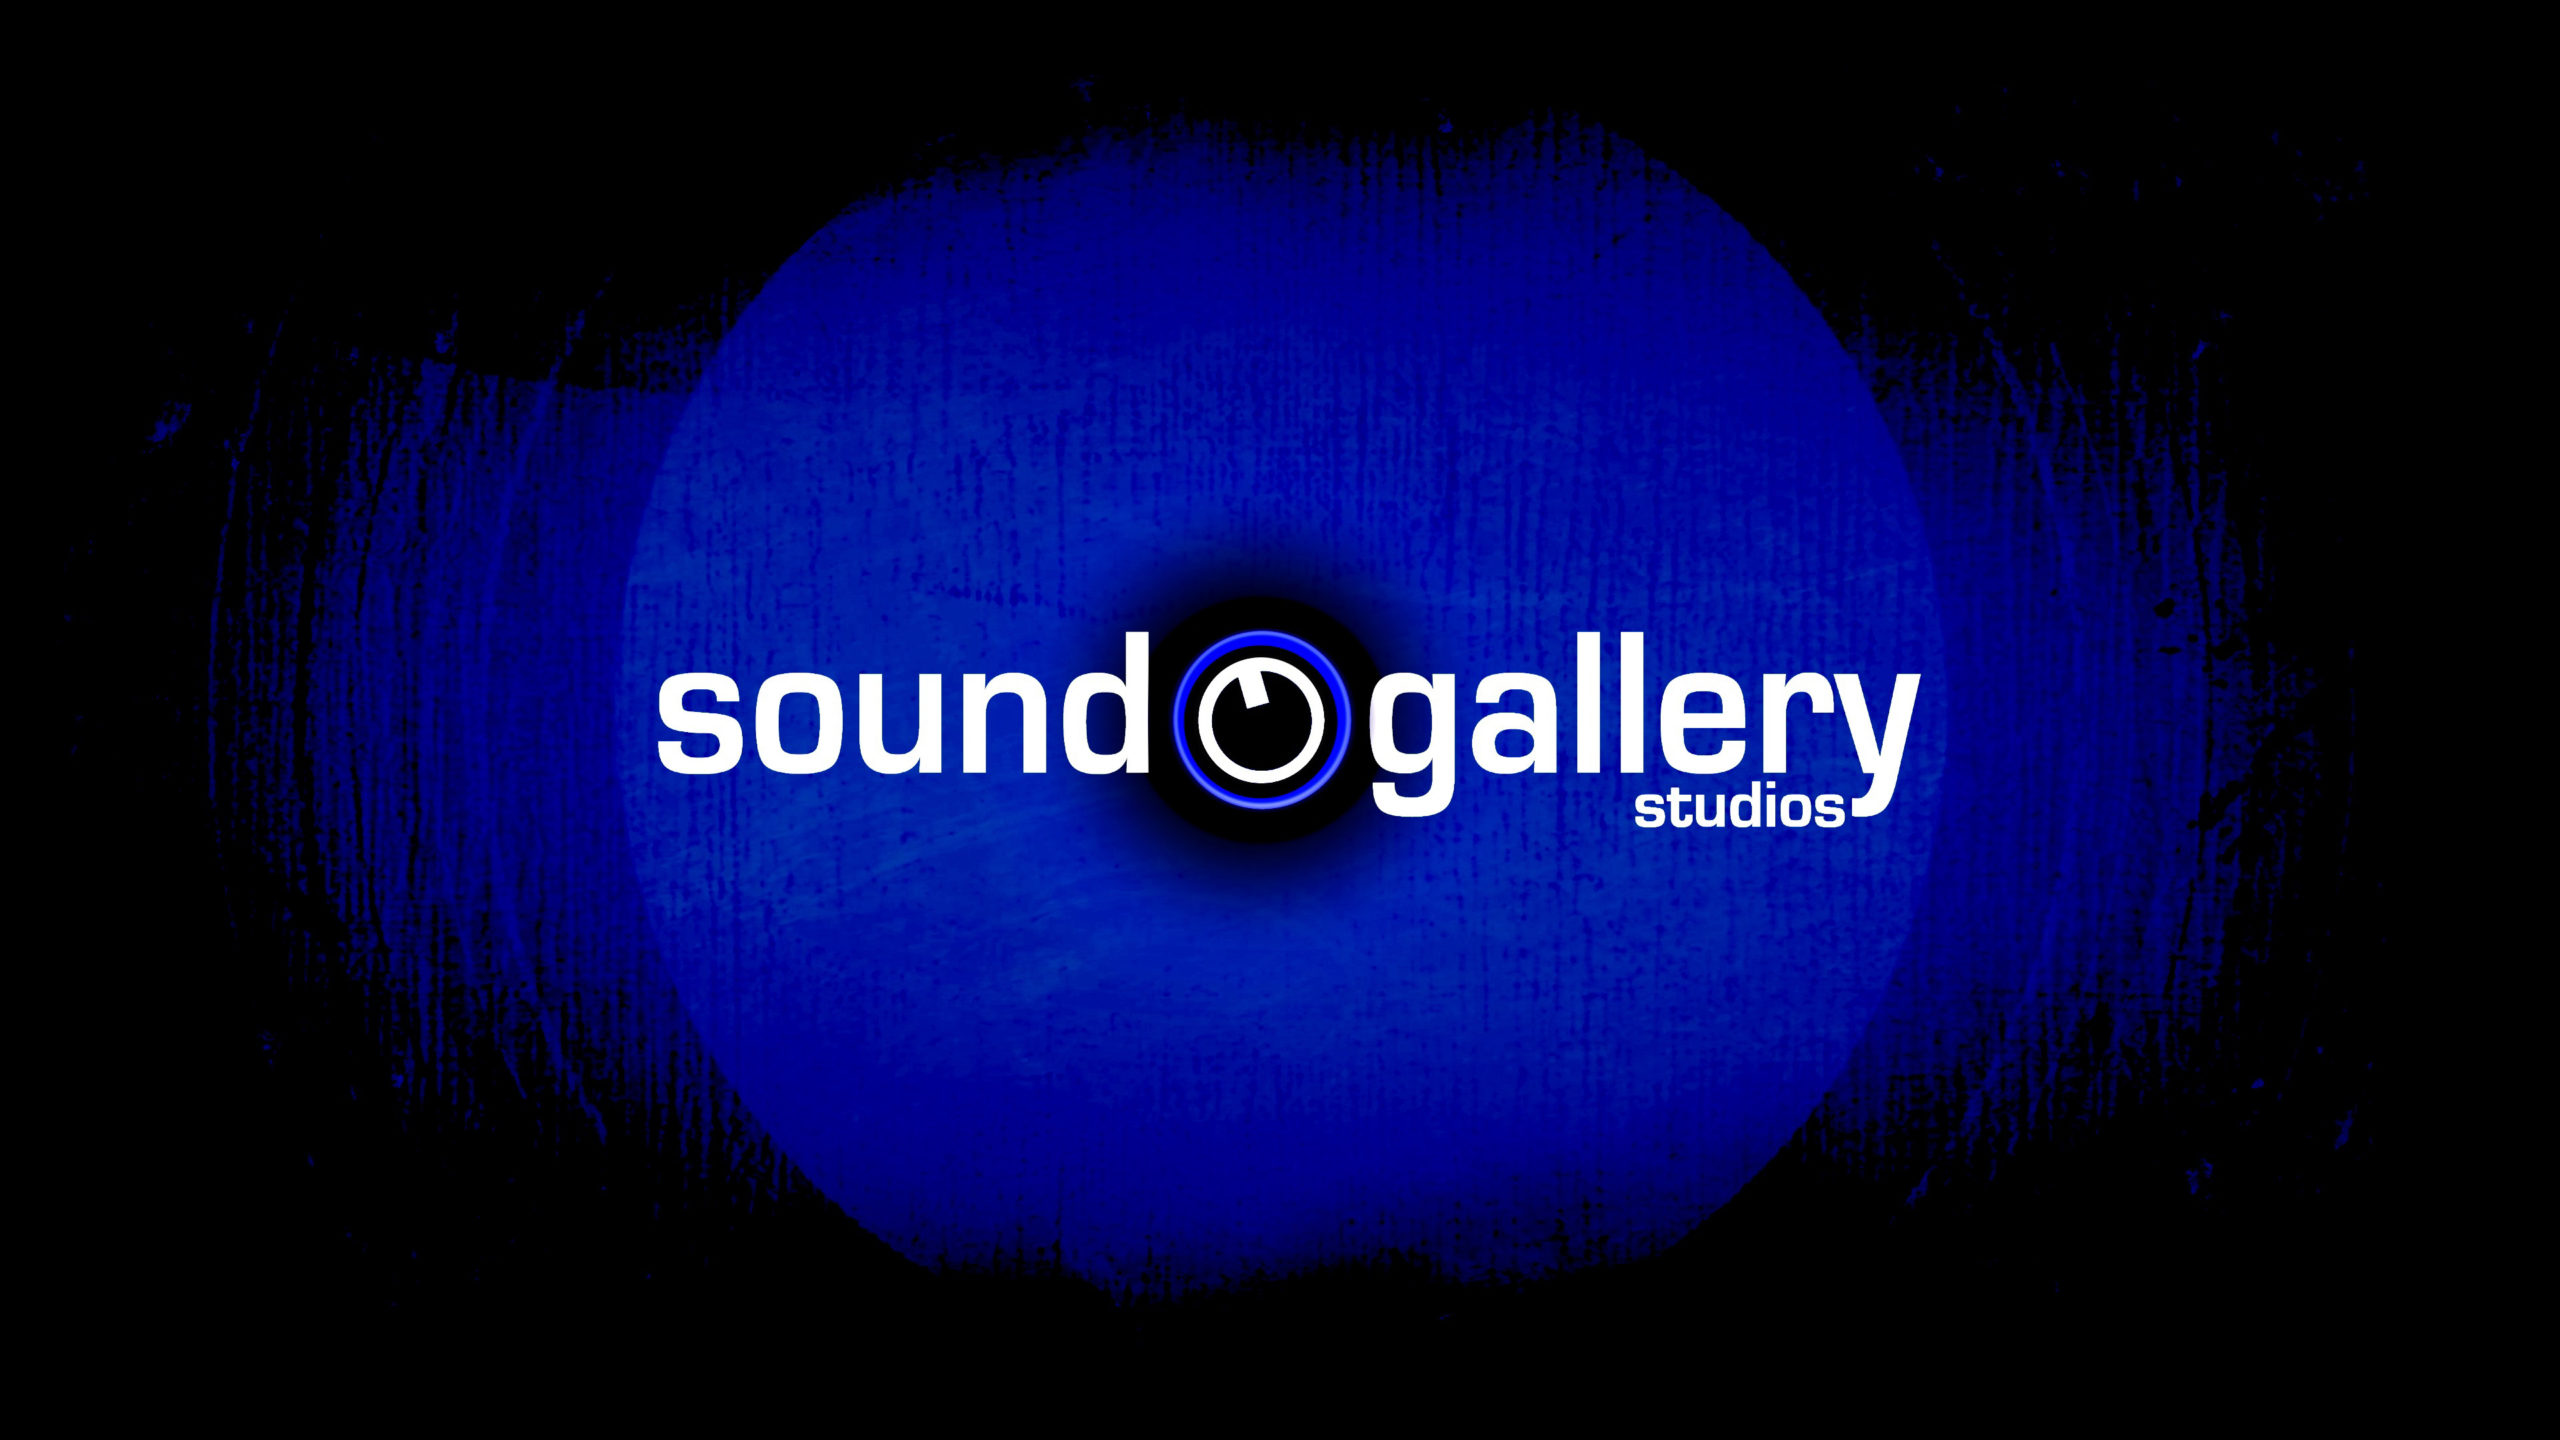 Sound Gallery's logo. A black background with a blue circle. White text on top reads Sound Gallery Studios. In the middle of the image is a volume control.